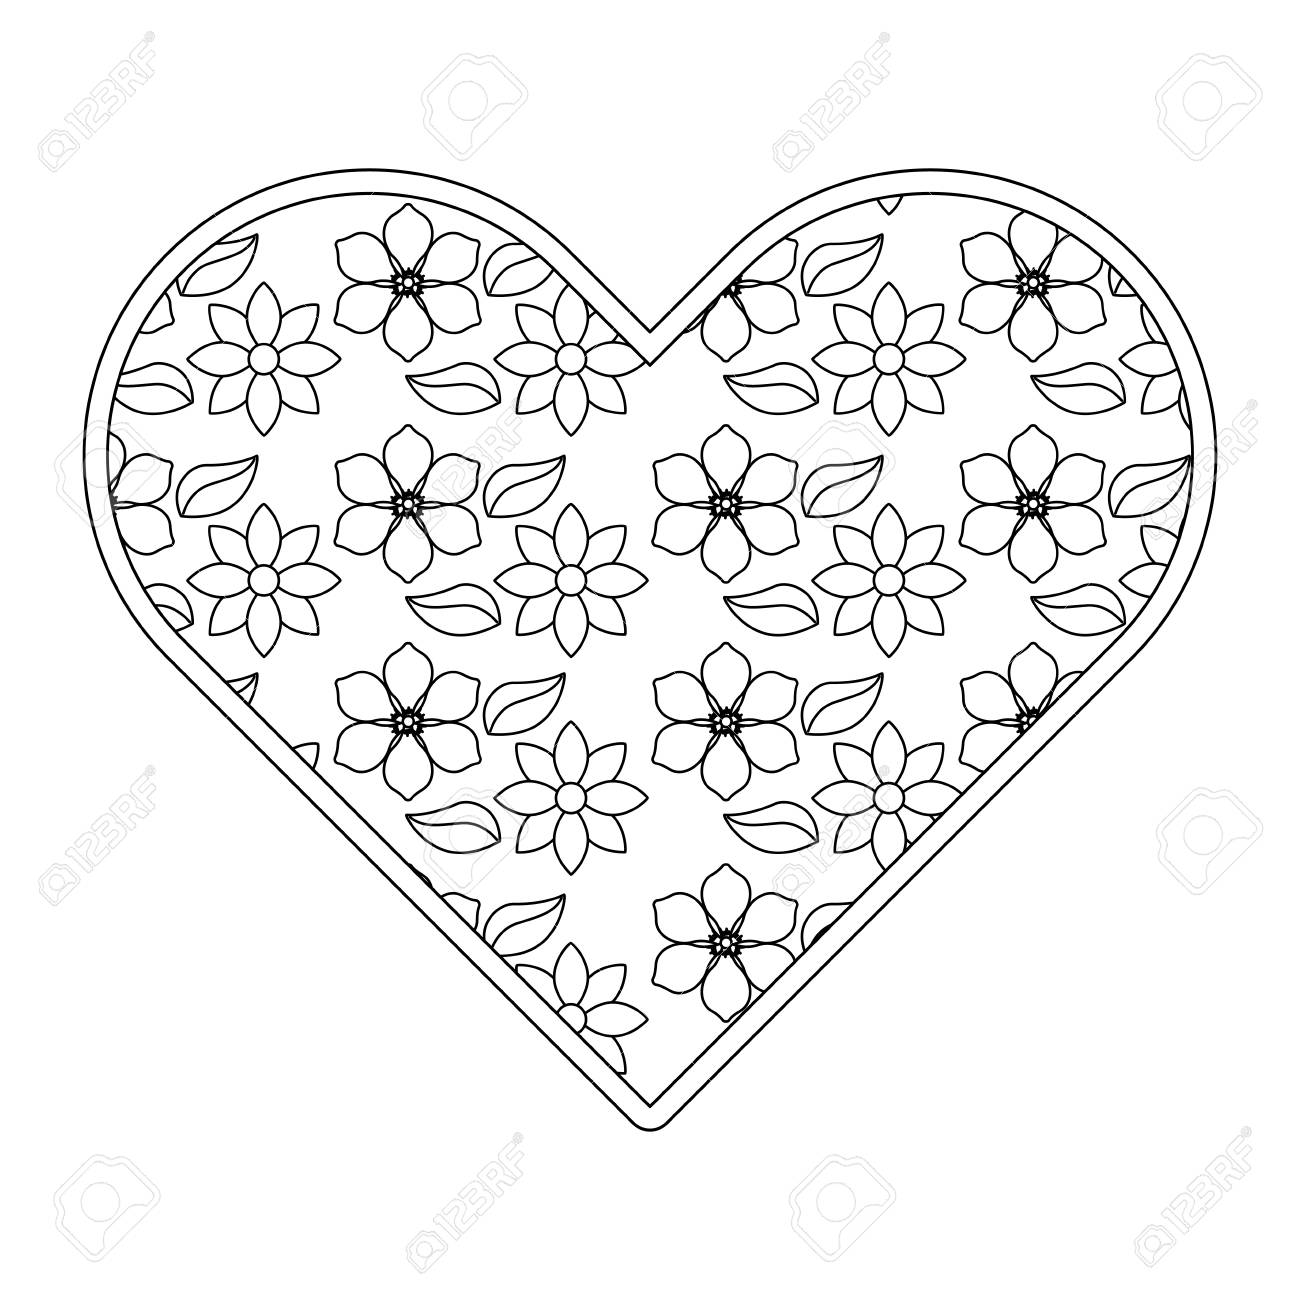 Delicate Heart With Jasmine Flower Decoration Vector Illustration